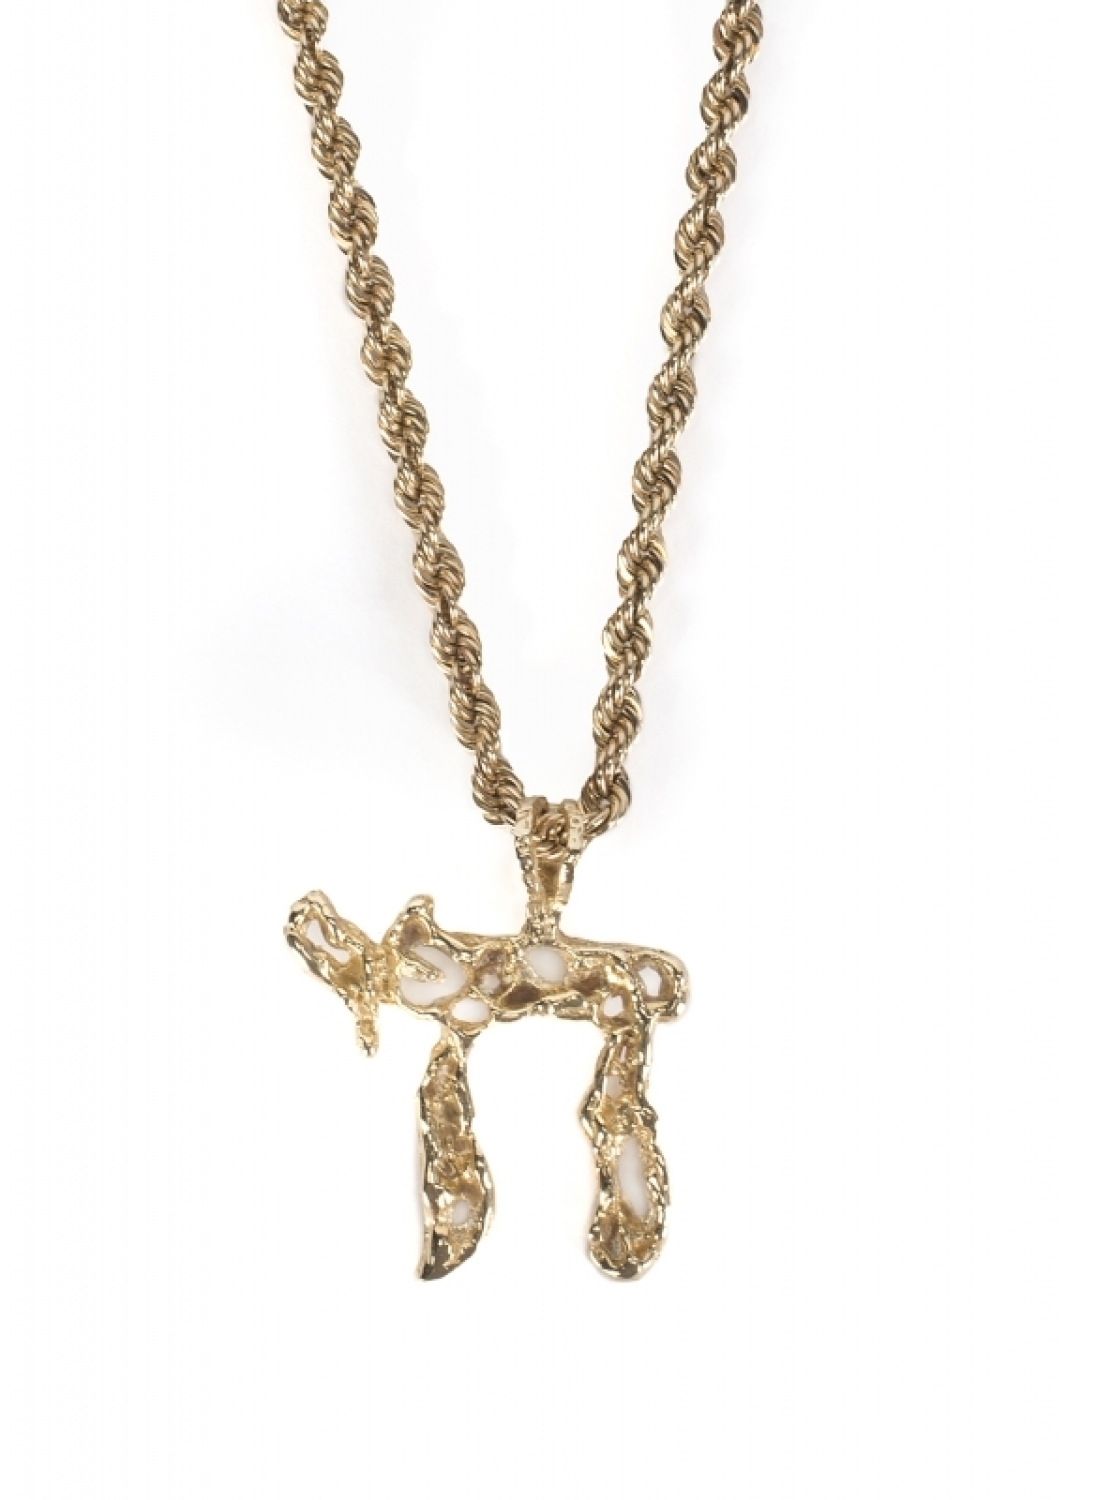 elvis presley gold chai necklace current price 15000